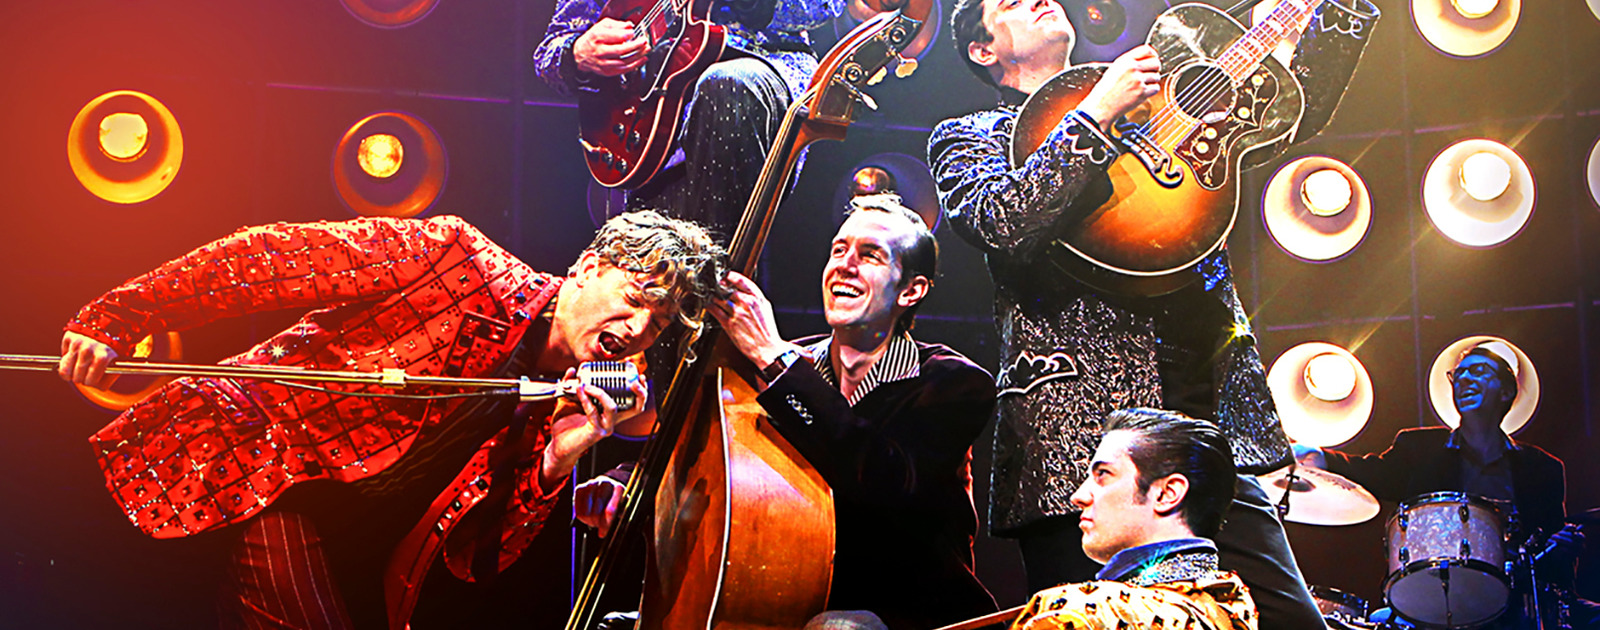 Image of the Million Dollar Quartet